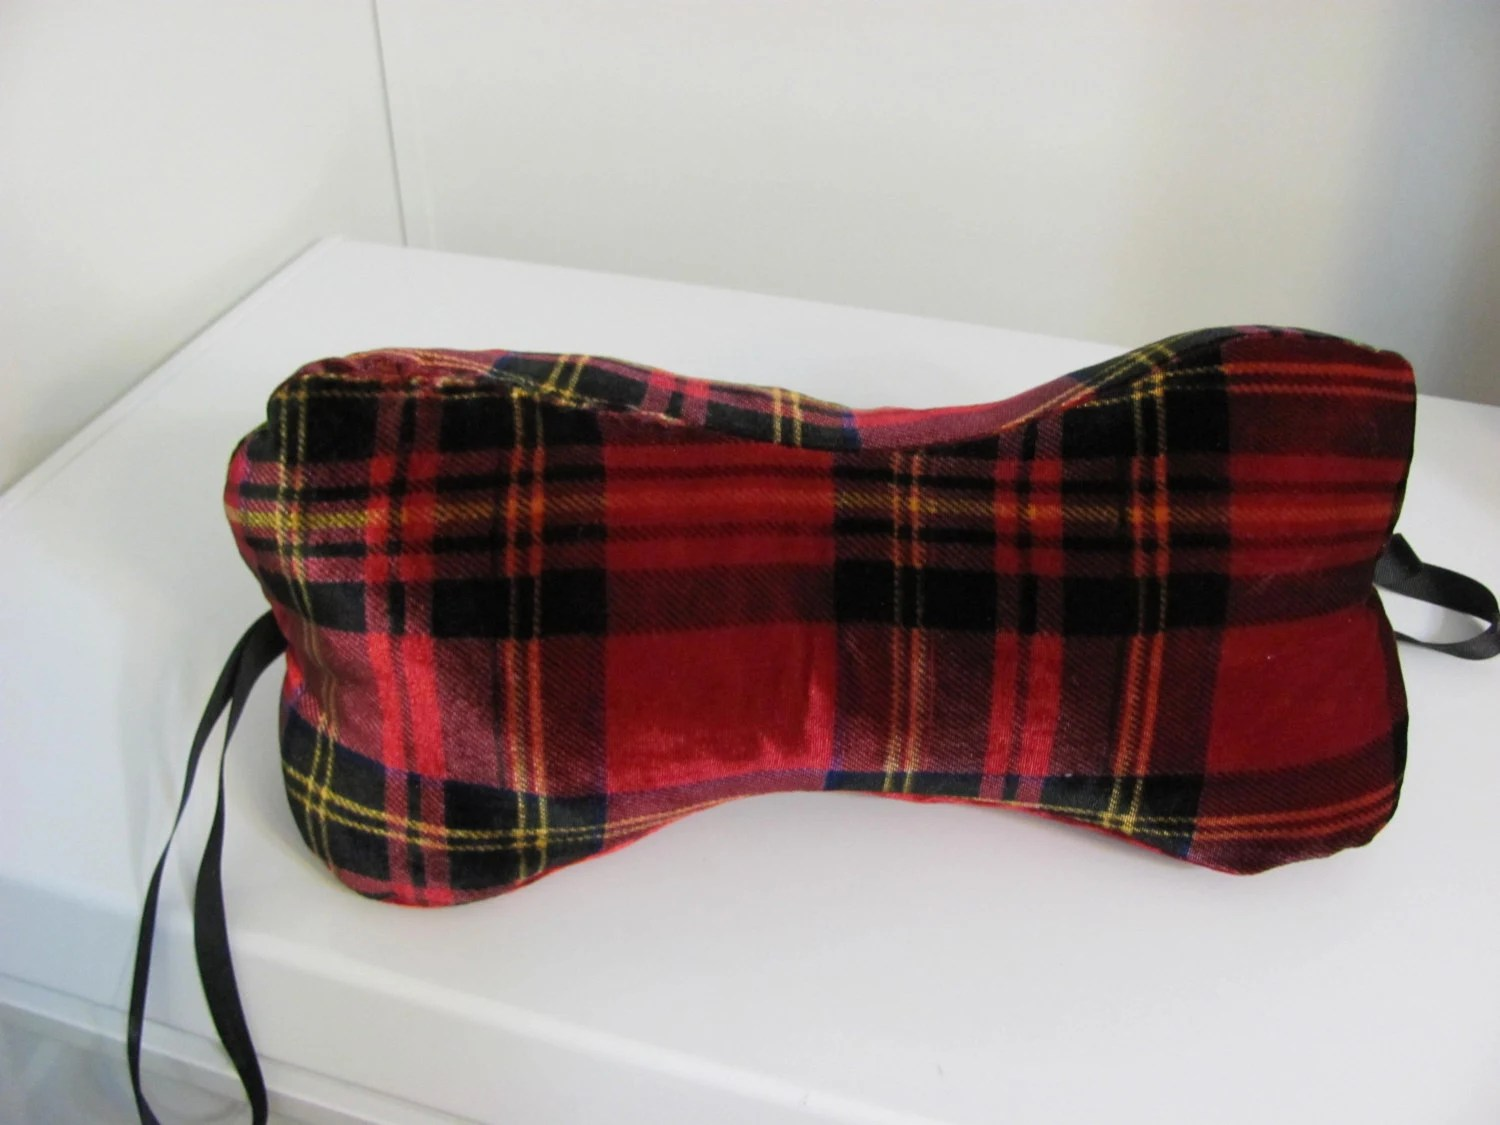 neck pillow bone shaped red plaid w red by OnyxHillGifts on Etsy